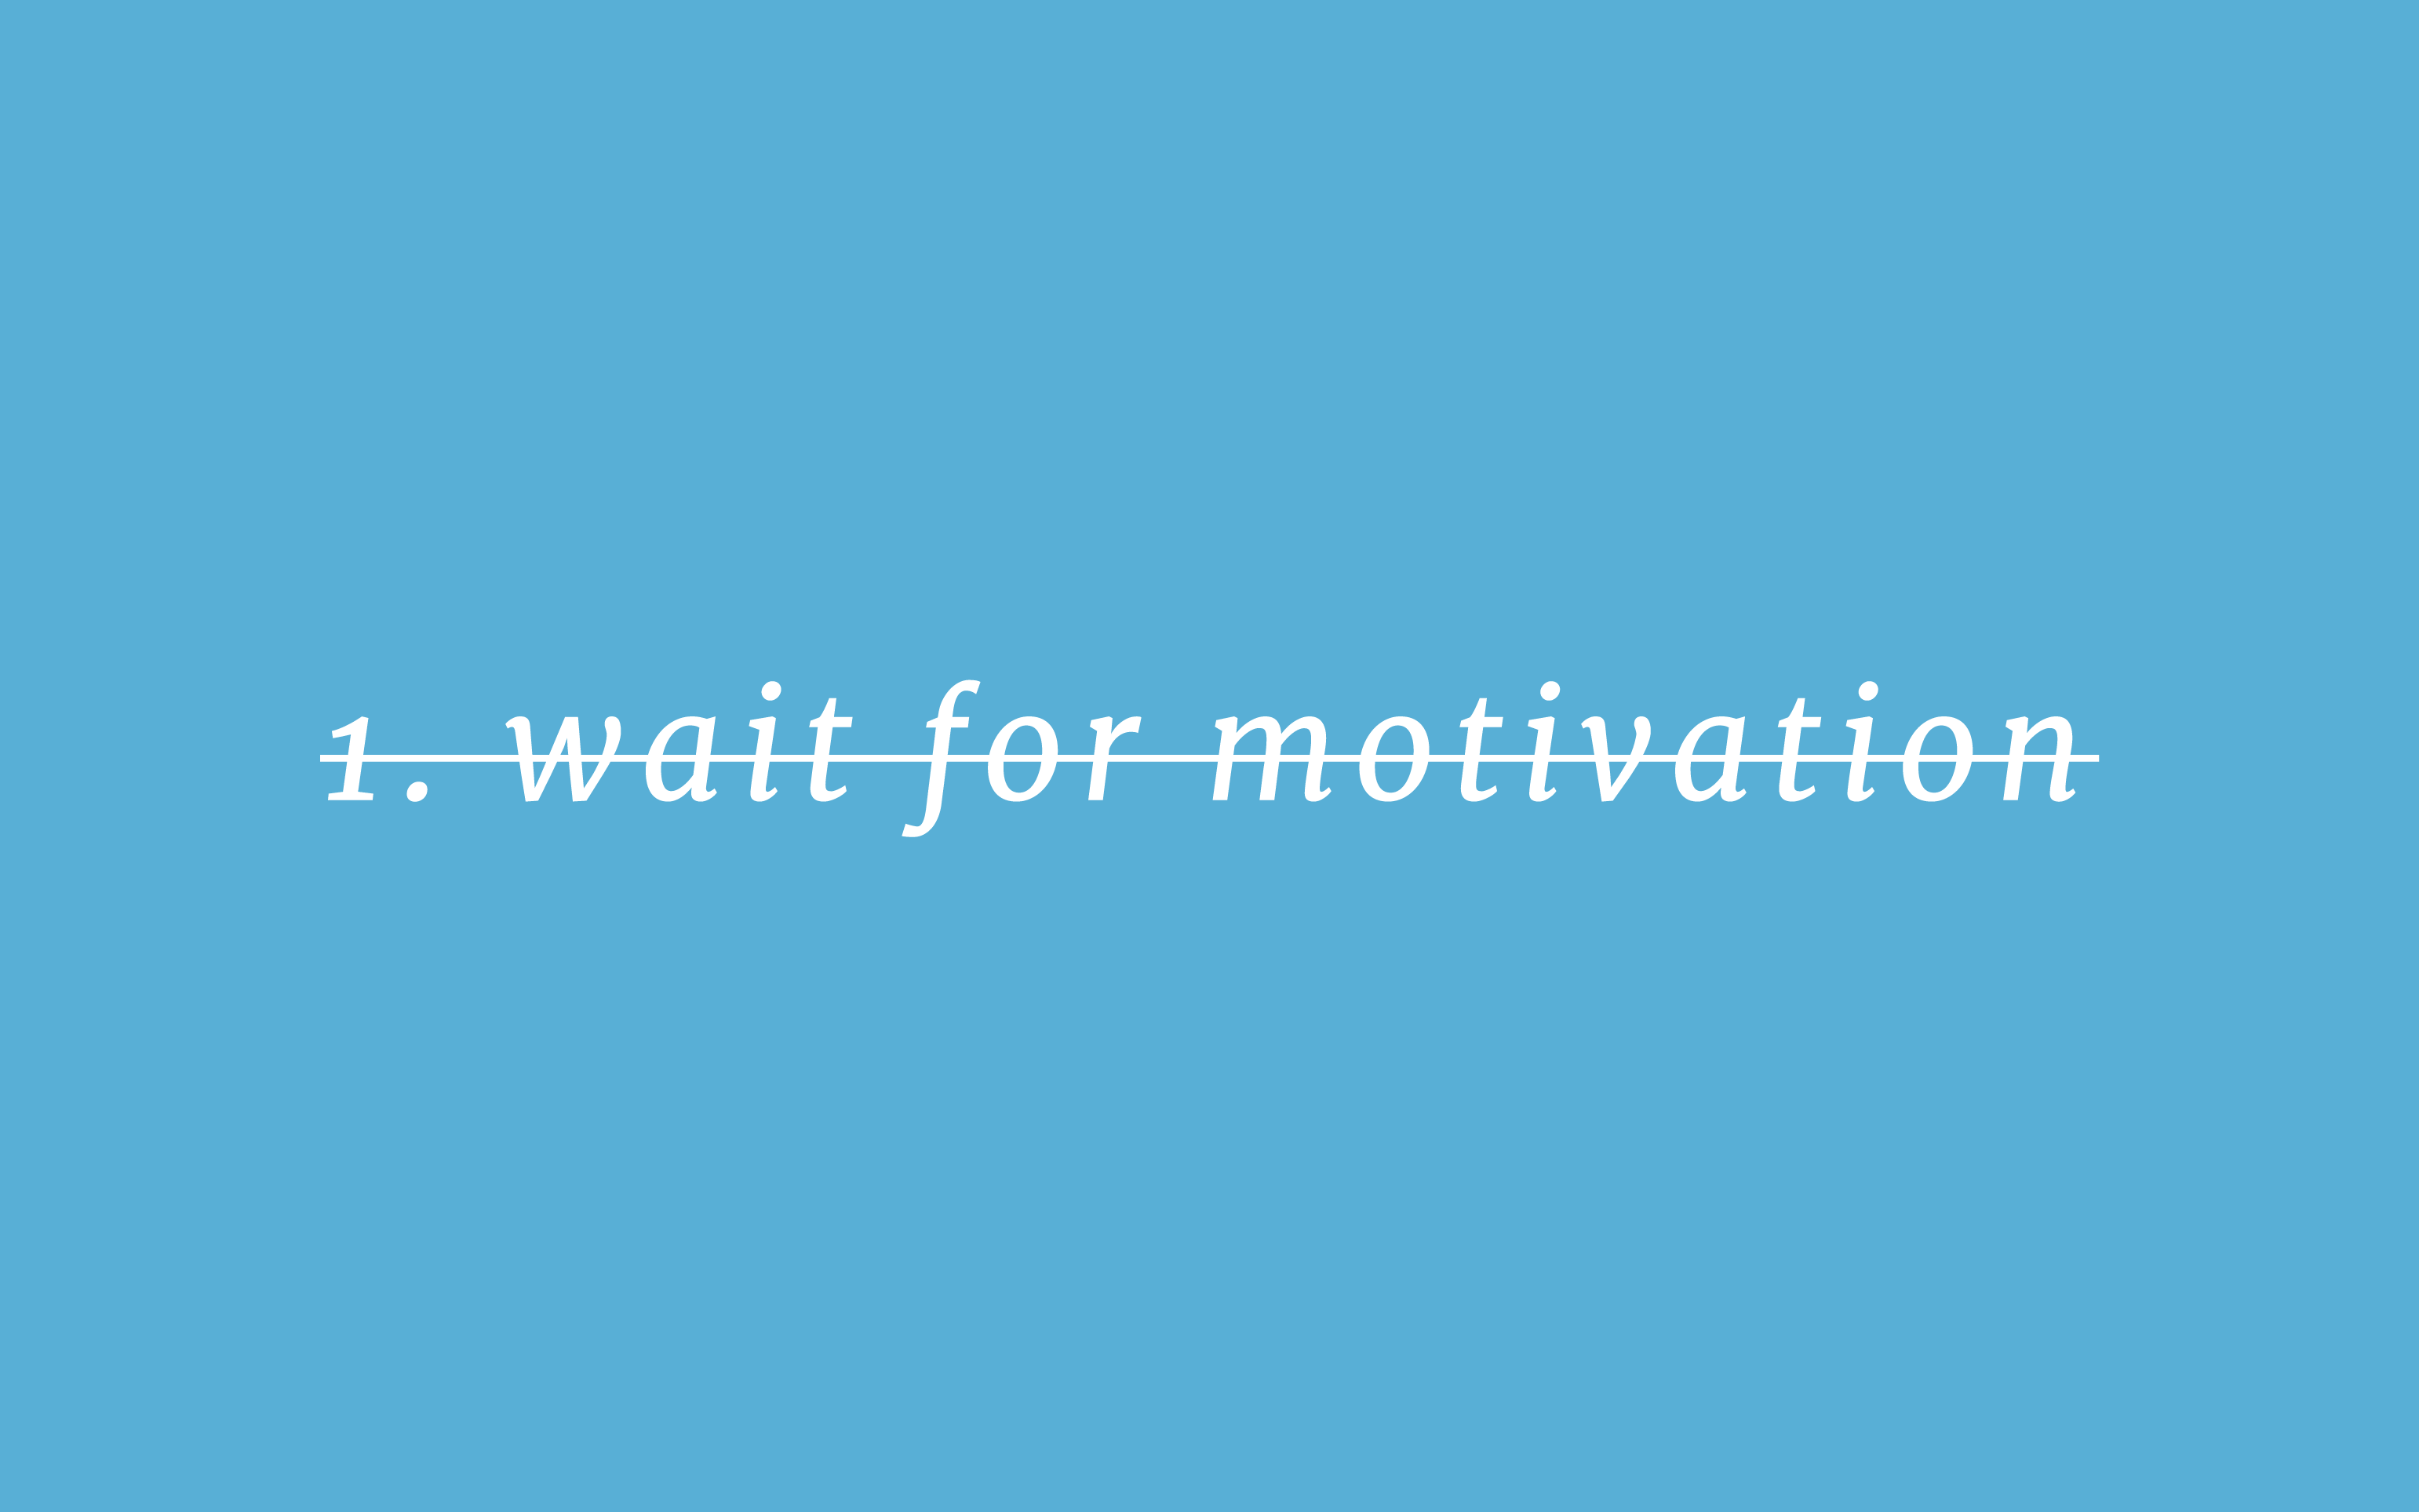 Crossed out text: '1. wait for motivation'